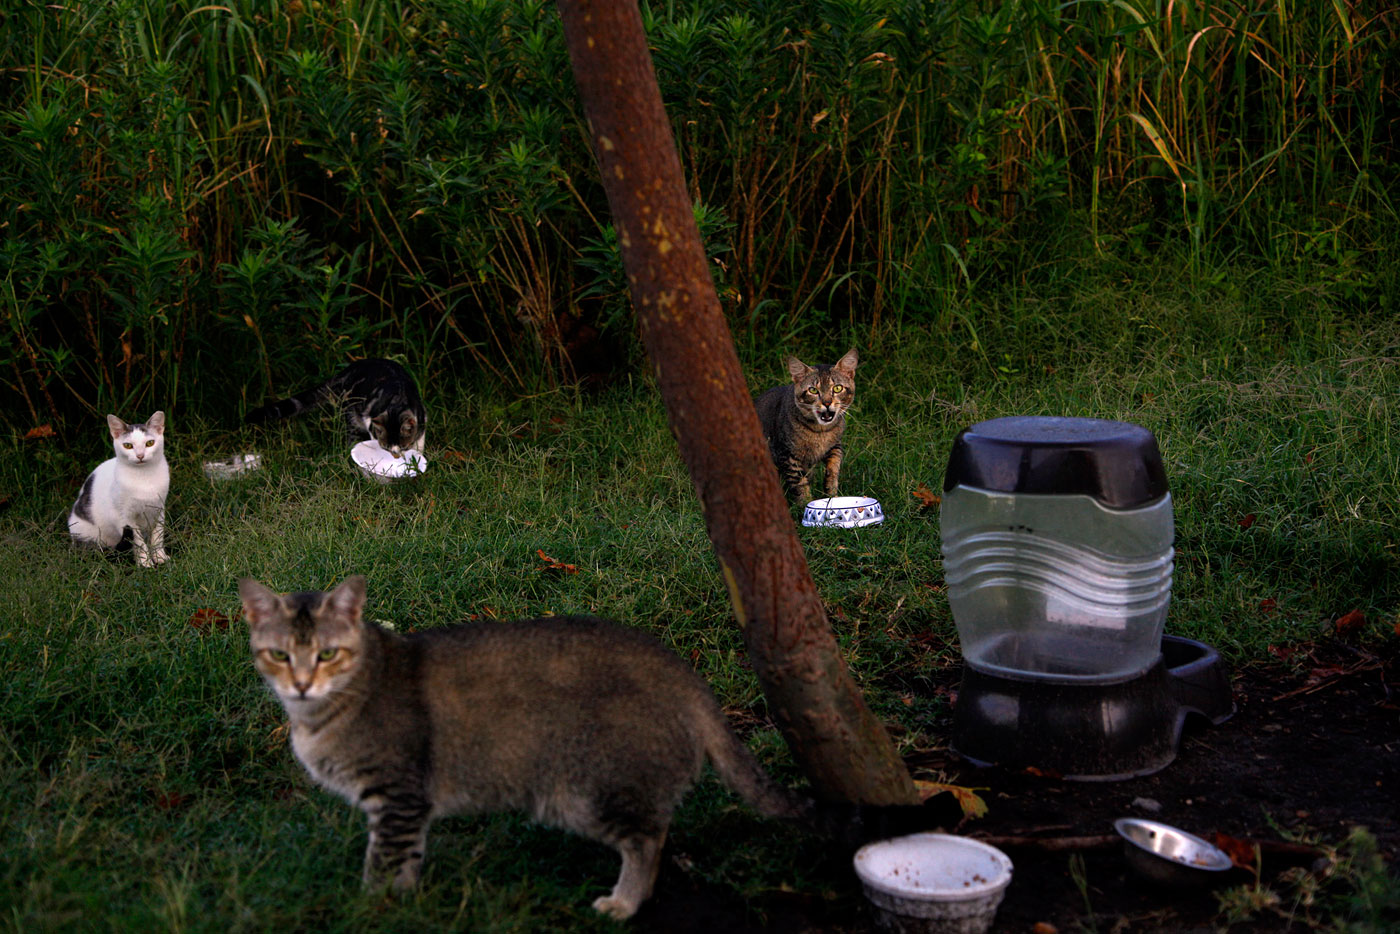 About a dozen feral cats live outside of McAllister Towing in Norfolk, Va., on Friday, July 13, 2012. Employee Michelle Edwards feeds them and recently had them neutered or spayed through a trap and release program. (Preston Gannaway/The Virginian-Pilot)